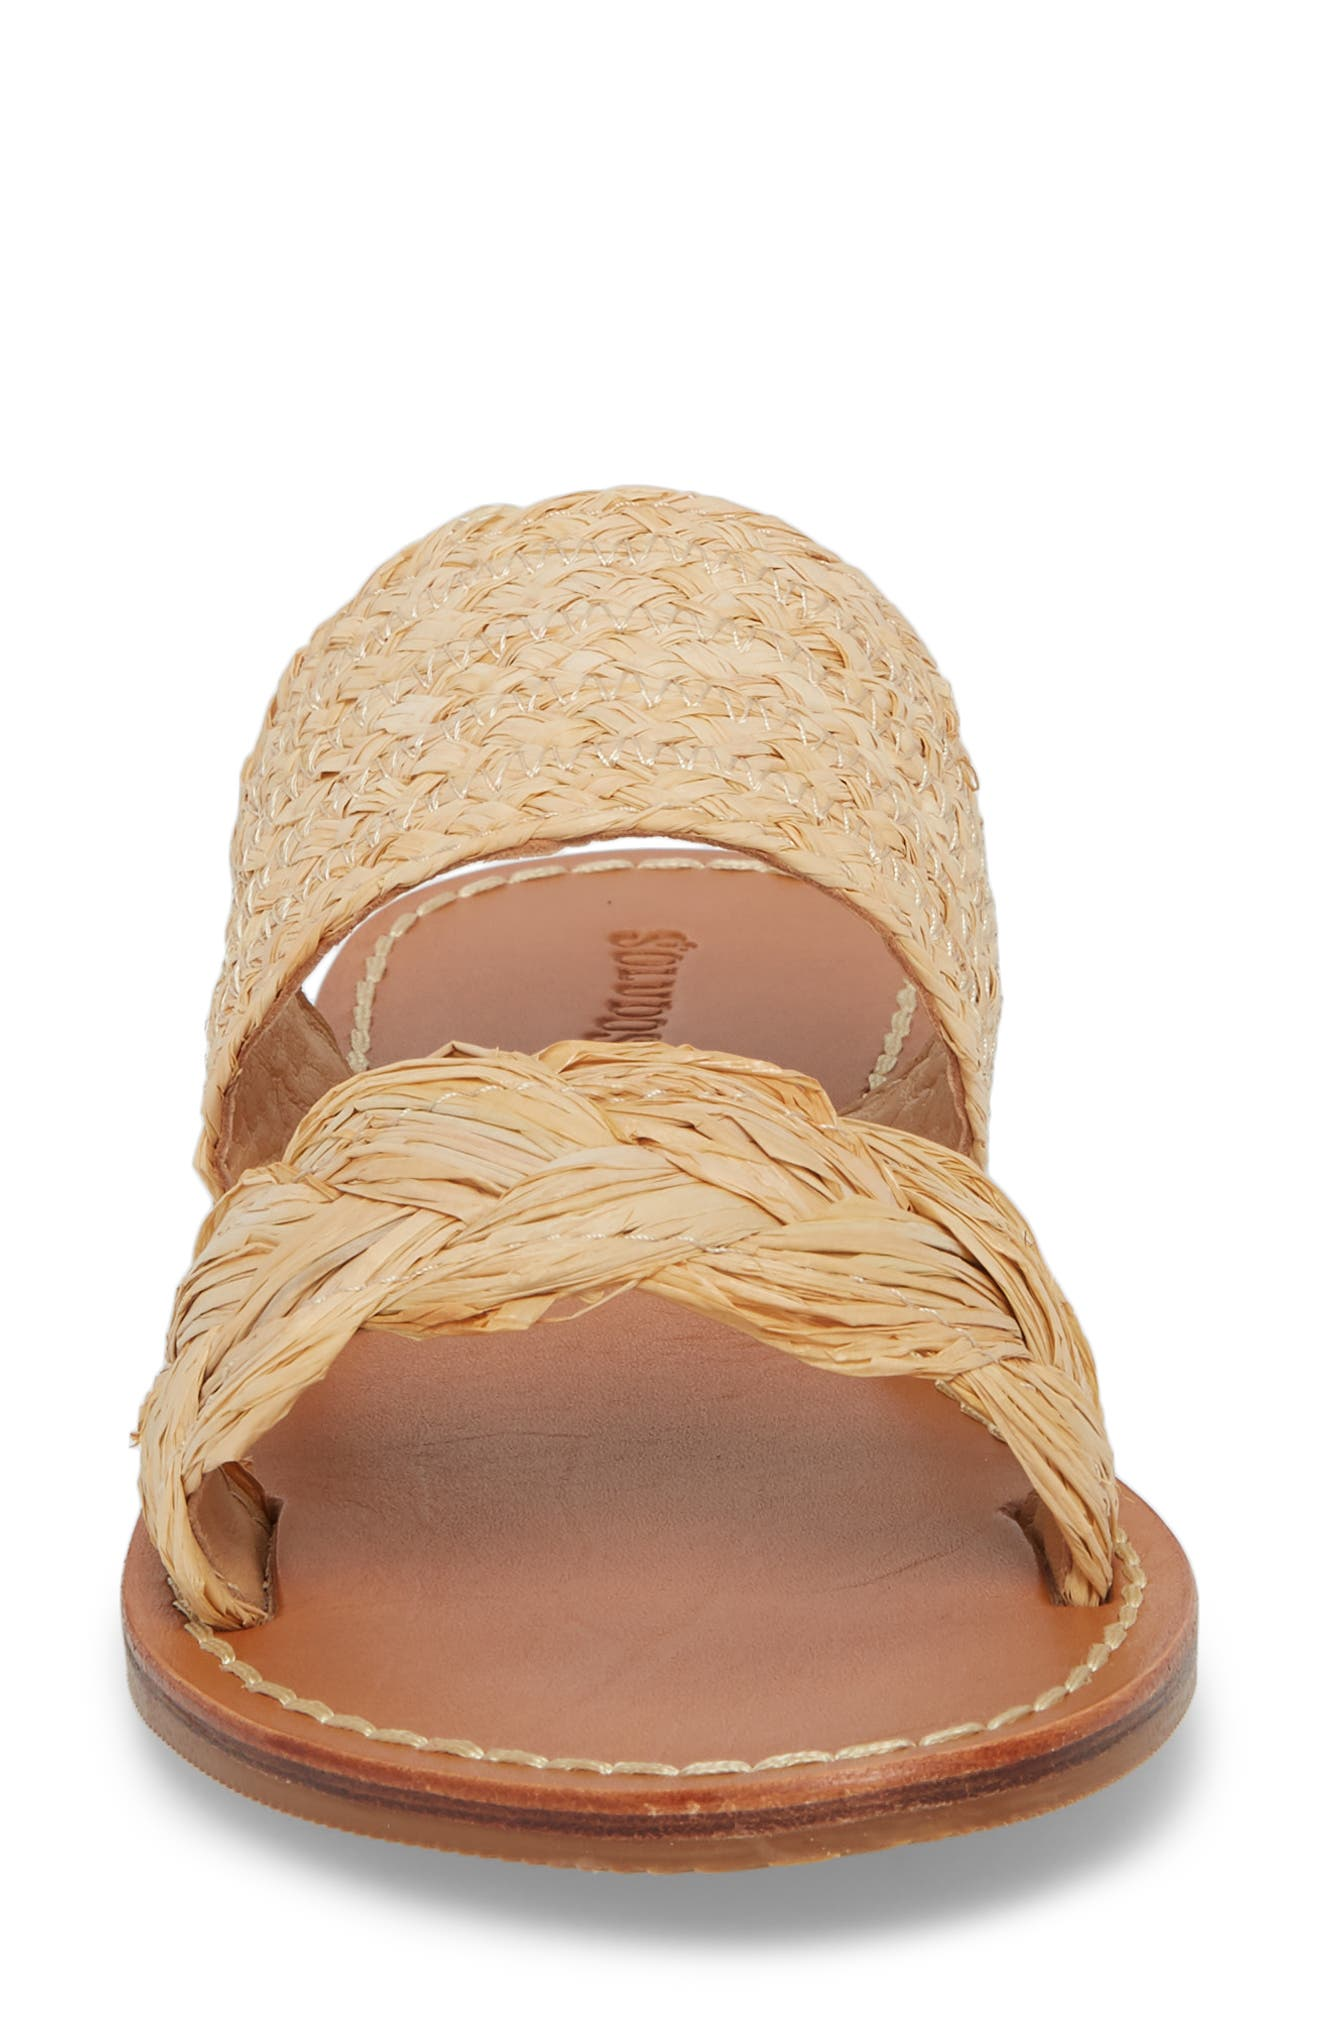 Braided Slide Sandal,                             Alternate thumbnail 4, color,                             Natural Leather